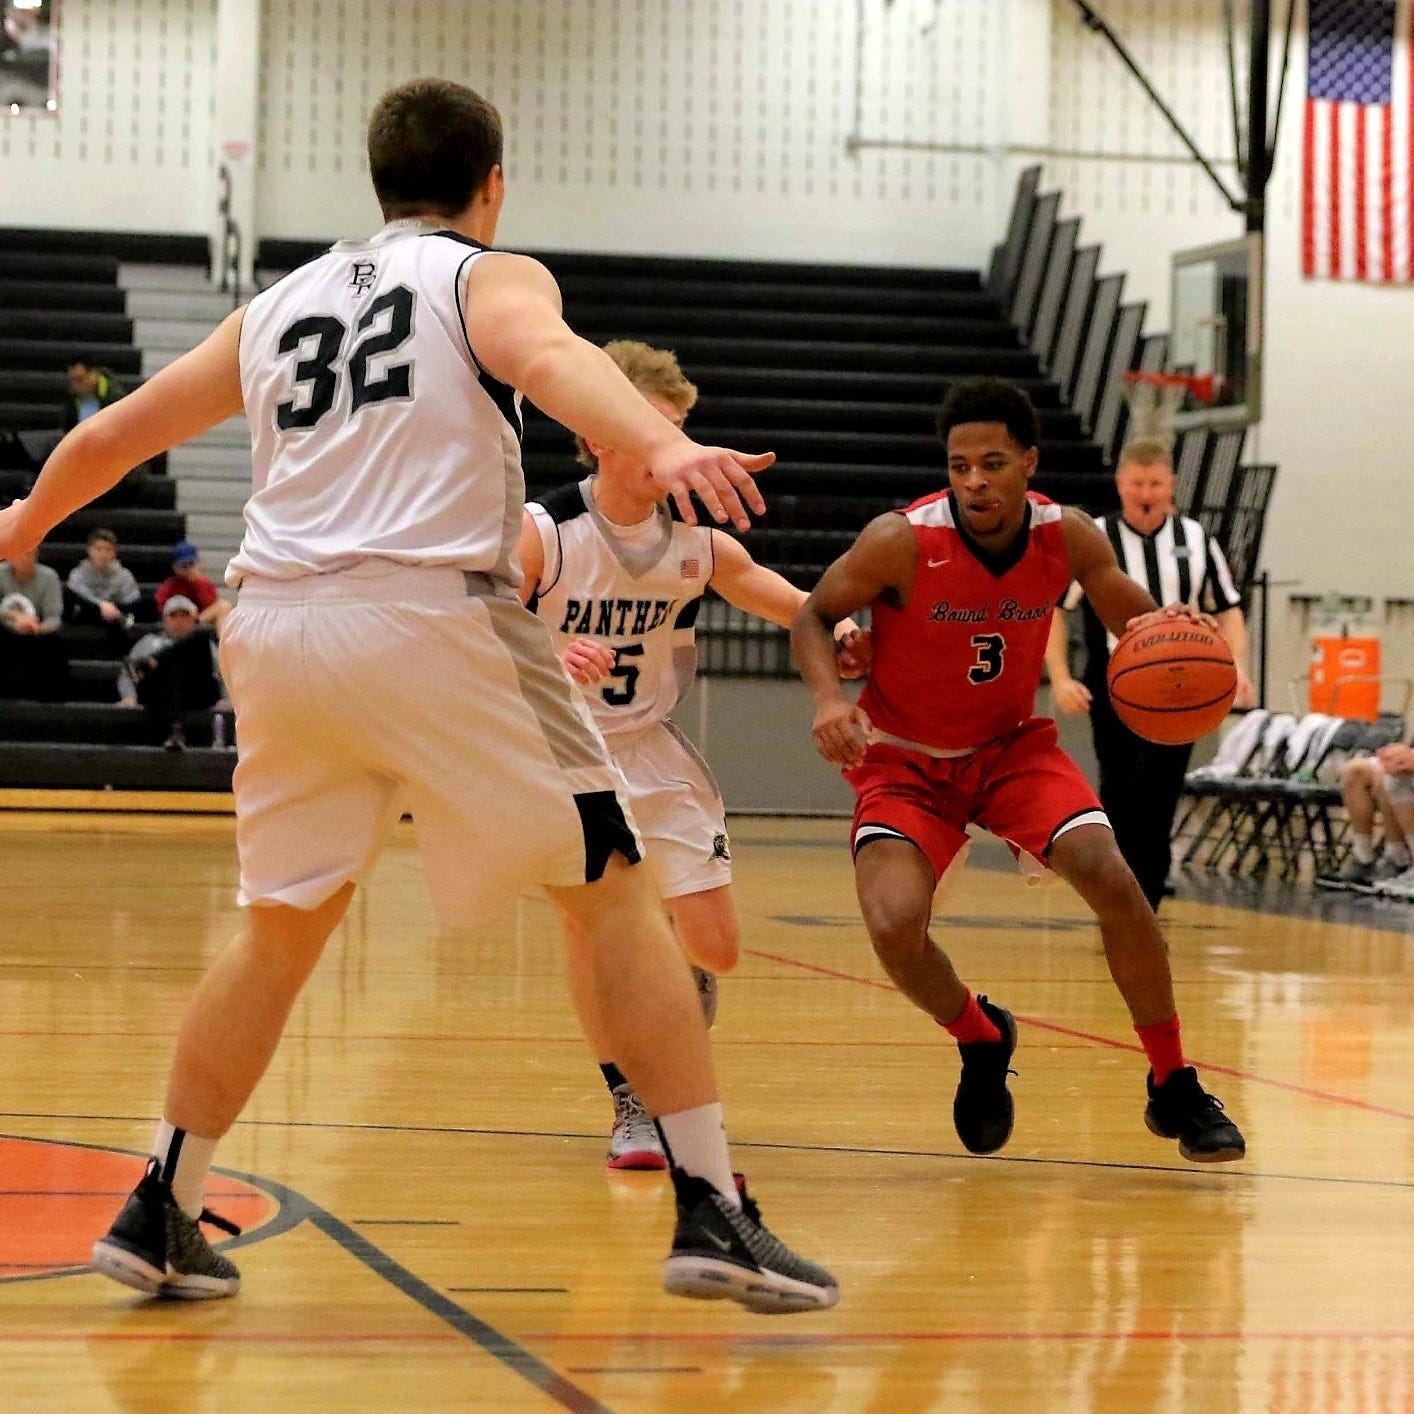 The seventh-seeded Bound Brook boys basketball team upset No. 2 Montgomery in the Somerset County Tournament quarterfinals on Tuesday night.